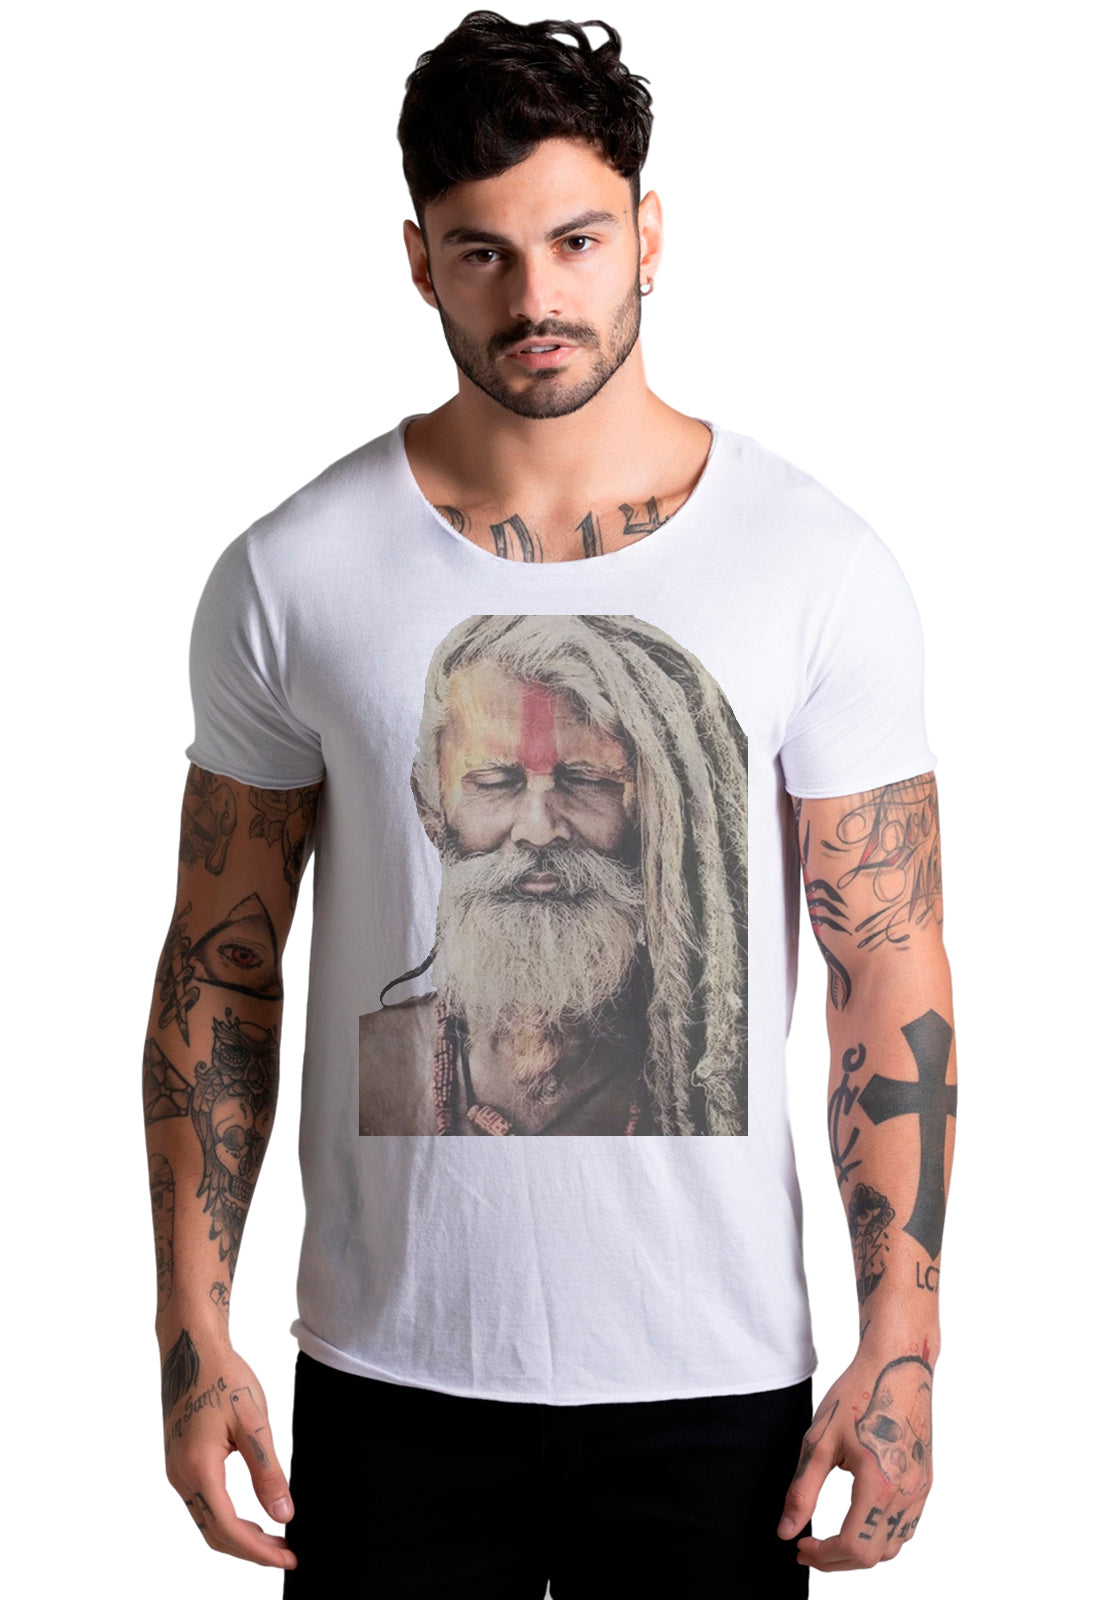 CAMISETA MASCULINA CORTE A FIO - OLD WISE DTG